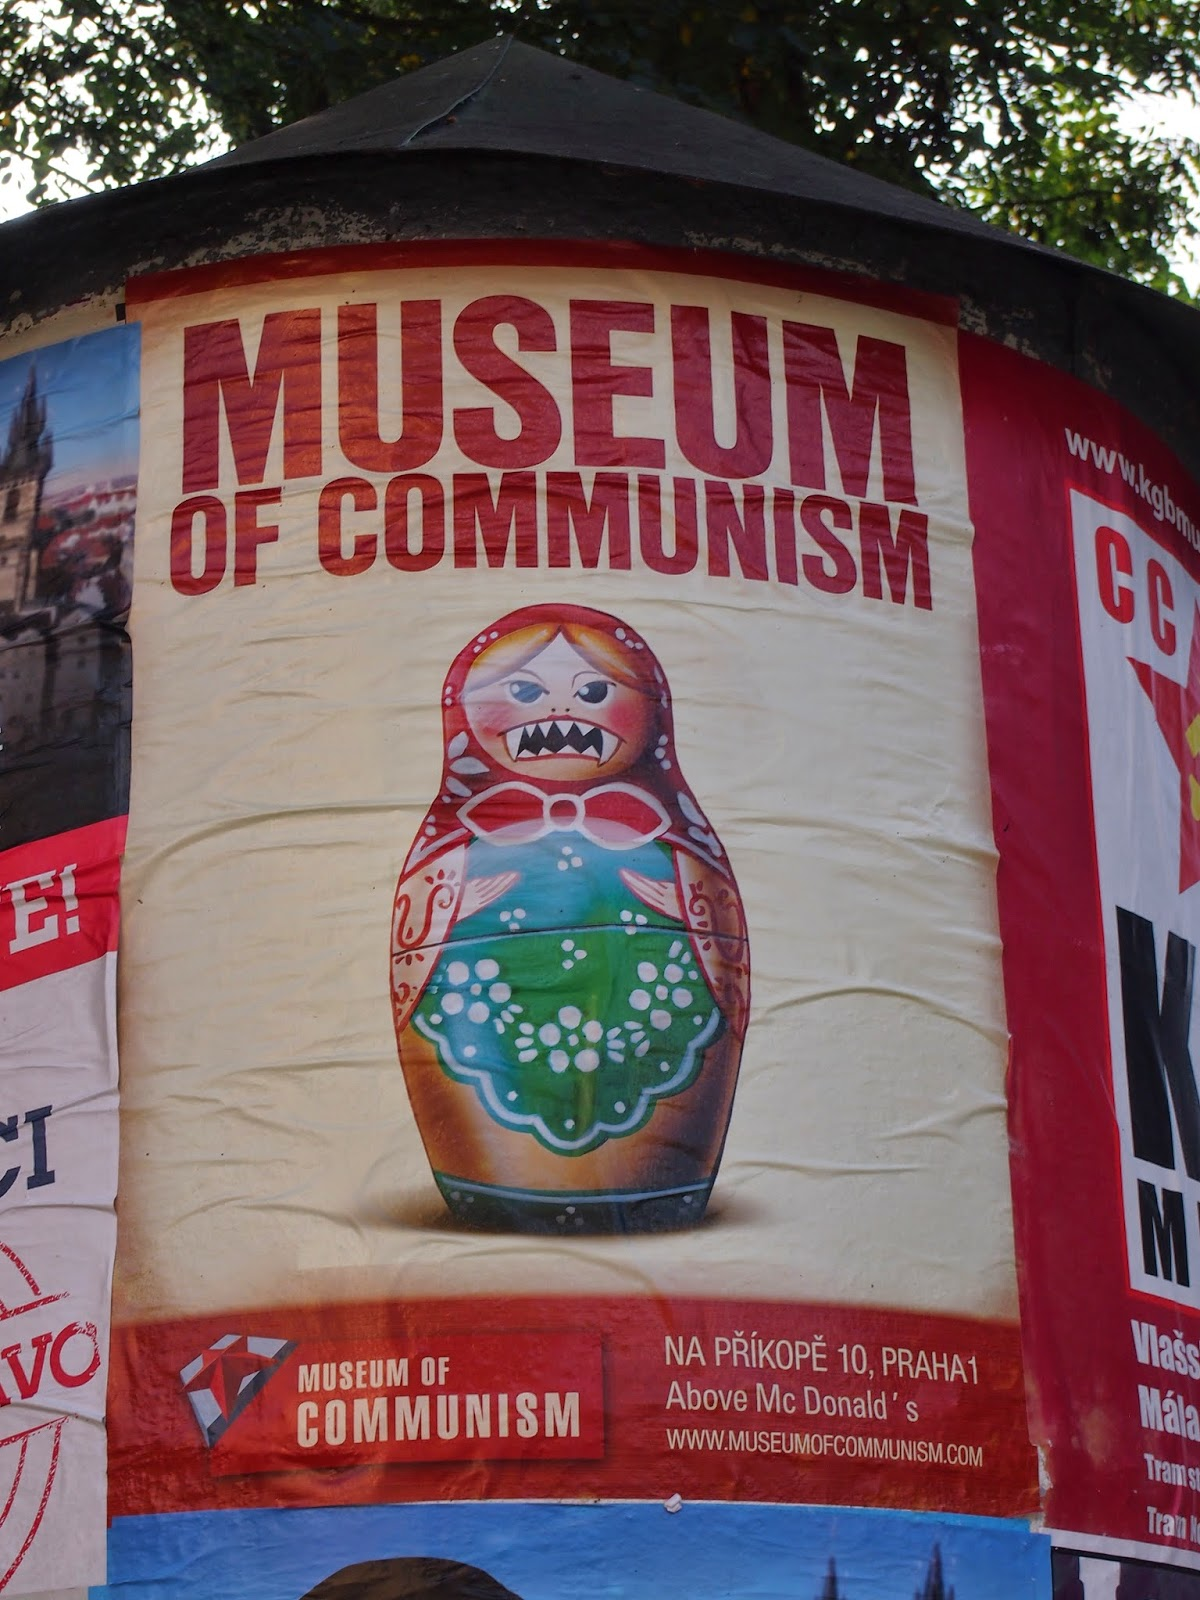 An flier for the Museum of Communism